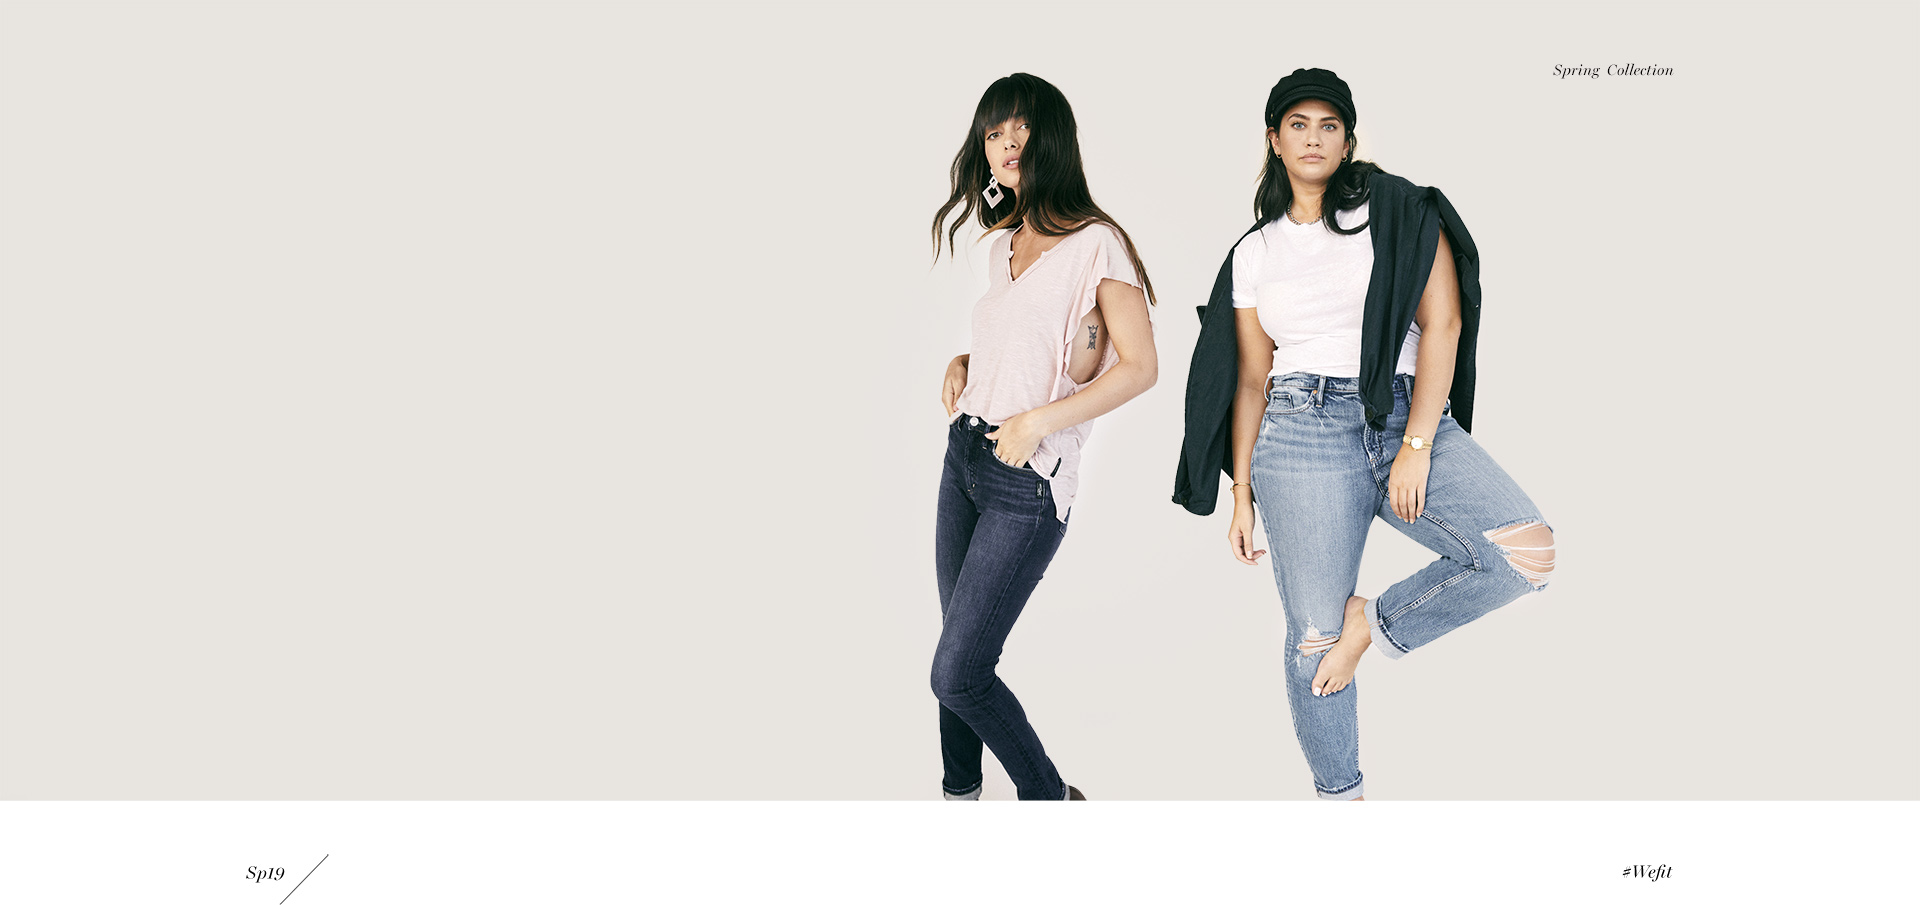 Silver Jeans Co. - On the Rise - New super-high rises and waist-defining pieces that flatter and lengthen in all the right ways. Your legs will thank you.